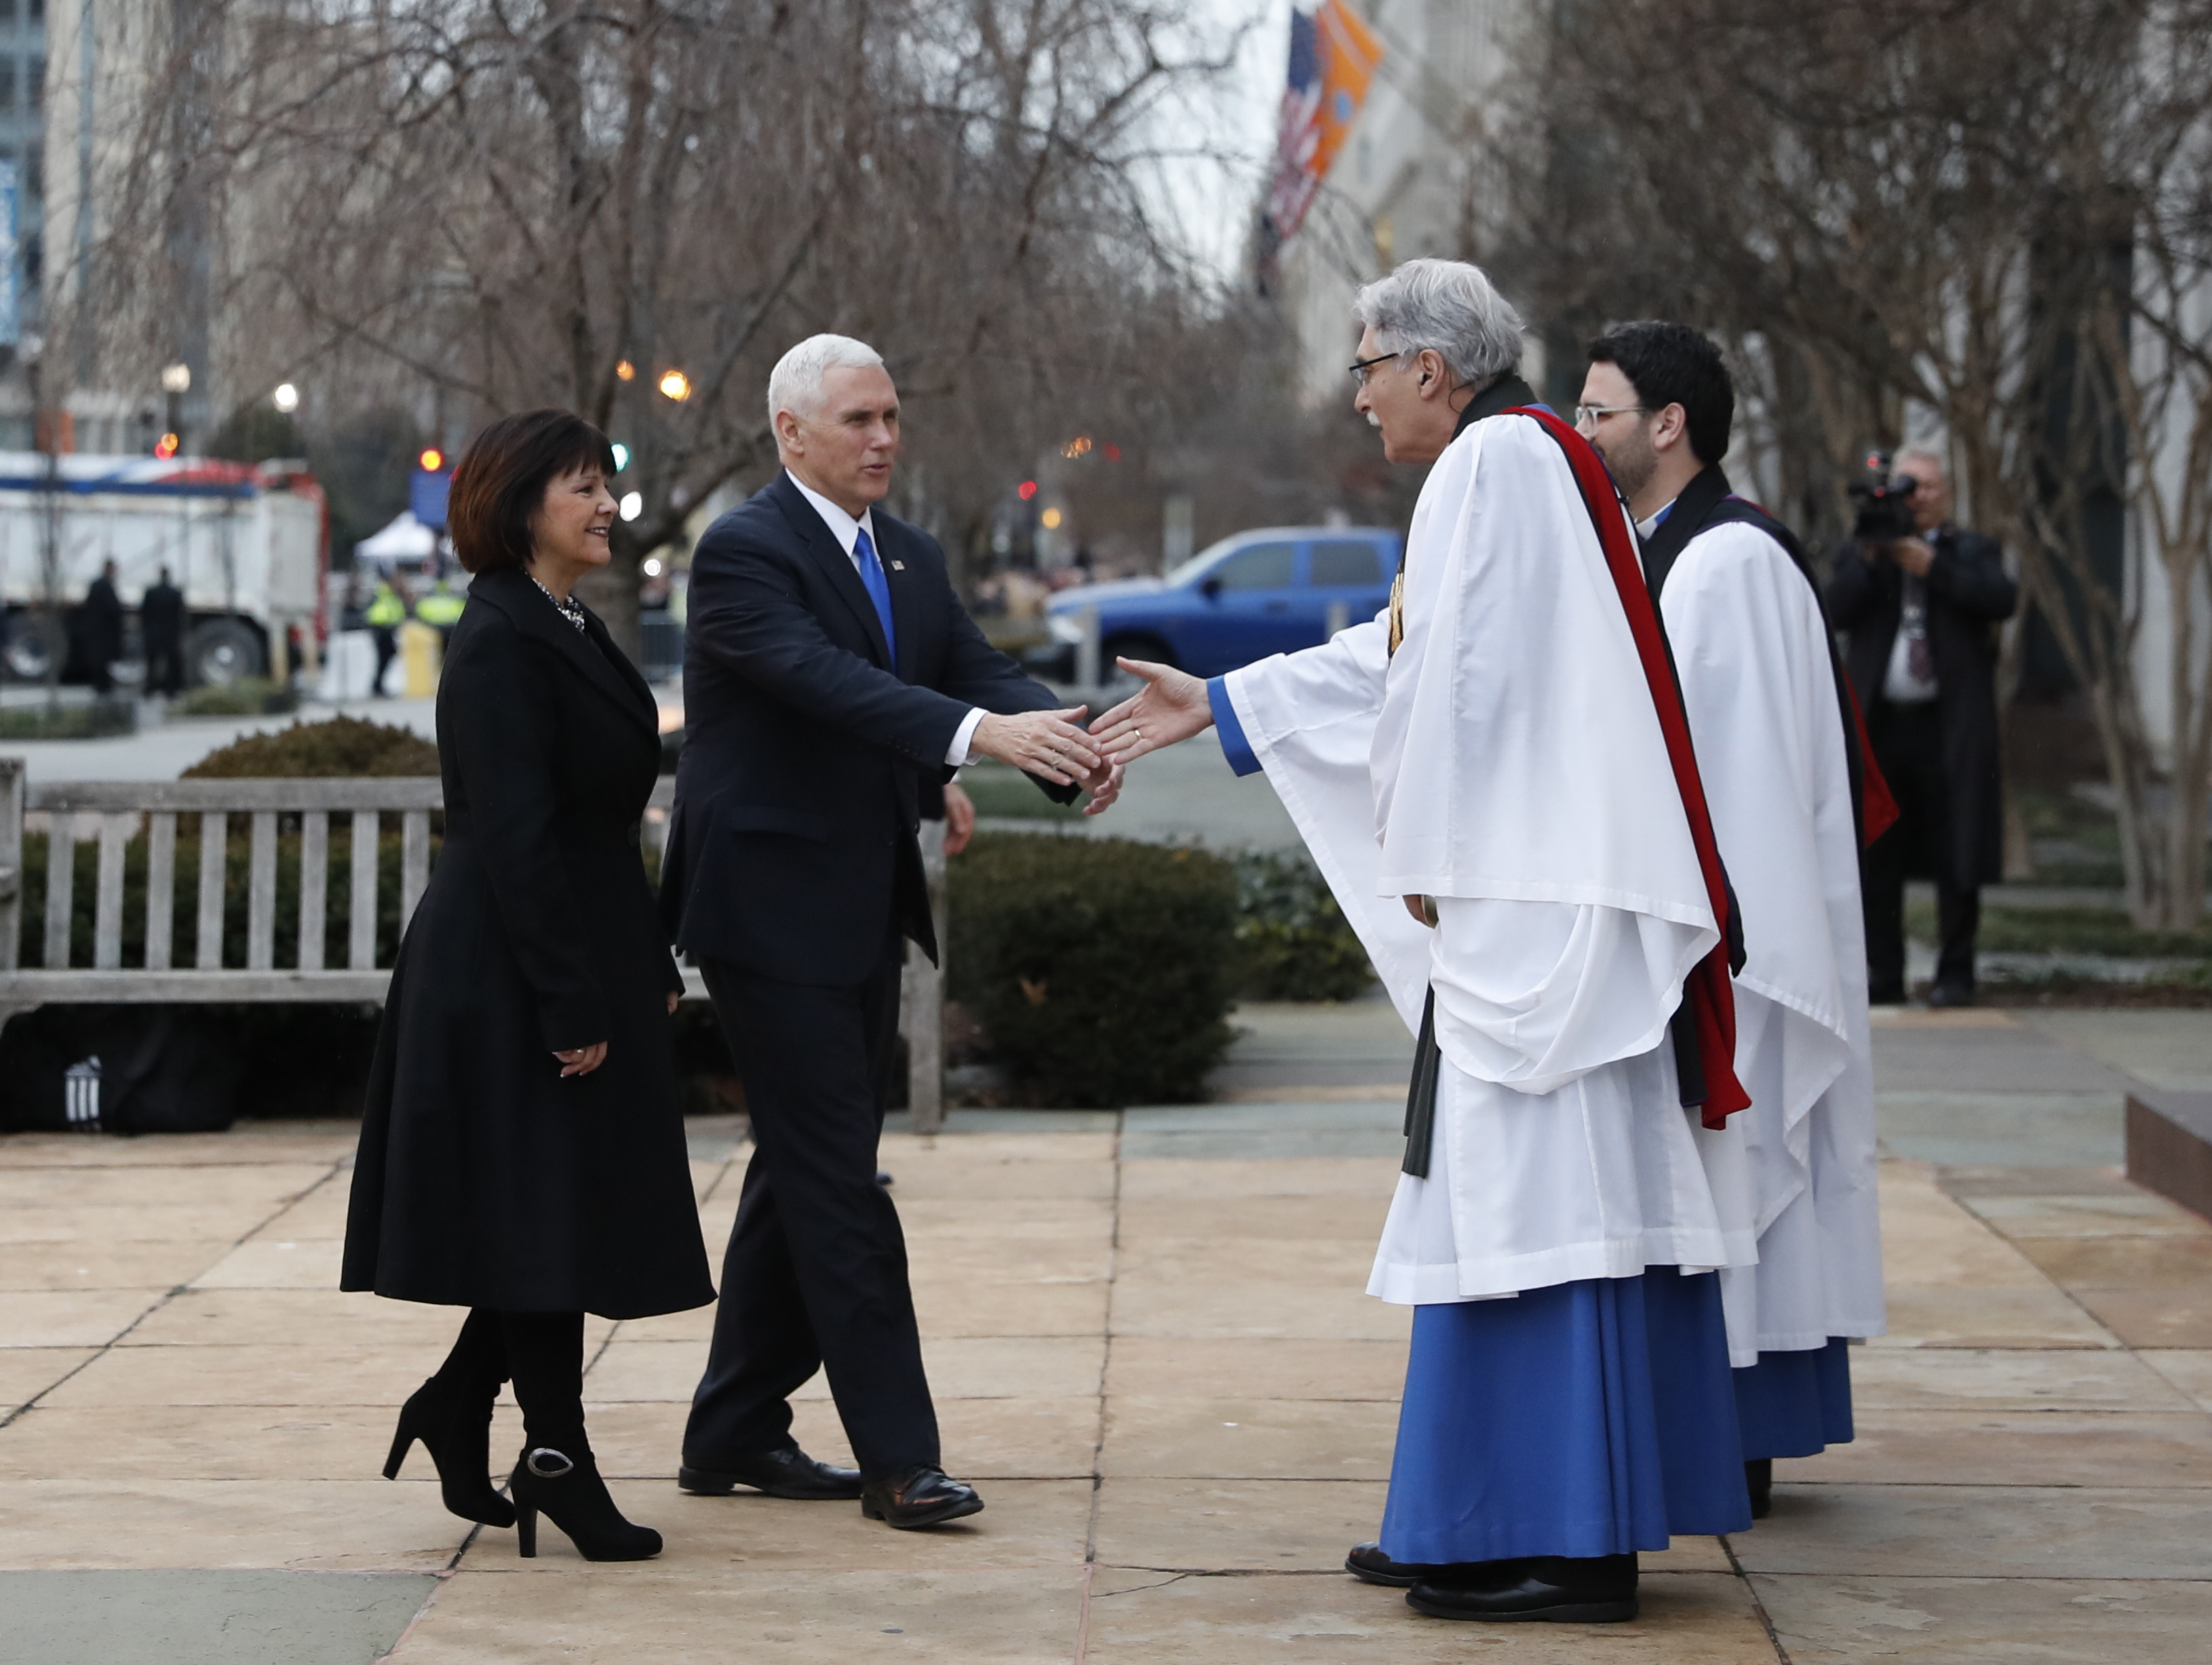 Rev. Luis Leon greets Vice President-elect Mike Pence and his wife Karen as they arrive for a church service at St. John's Episcopal Church across from the White House in Washington on Jan. 20, 2017, on Donald Trump's inauguration day. (AP Photo/Alex Brandon)